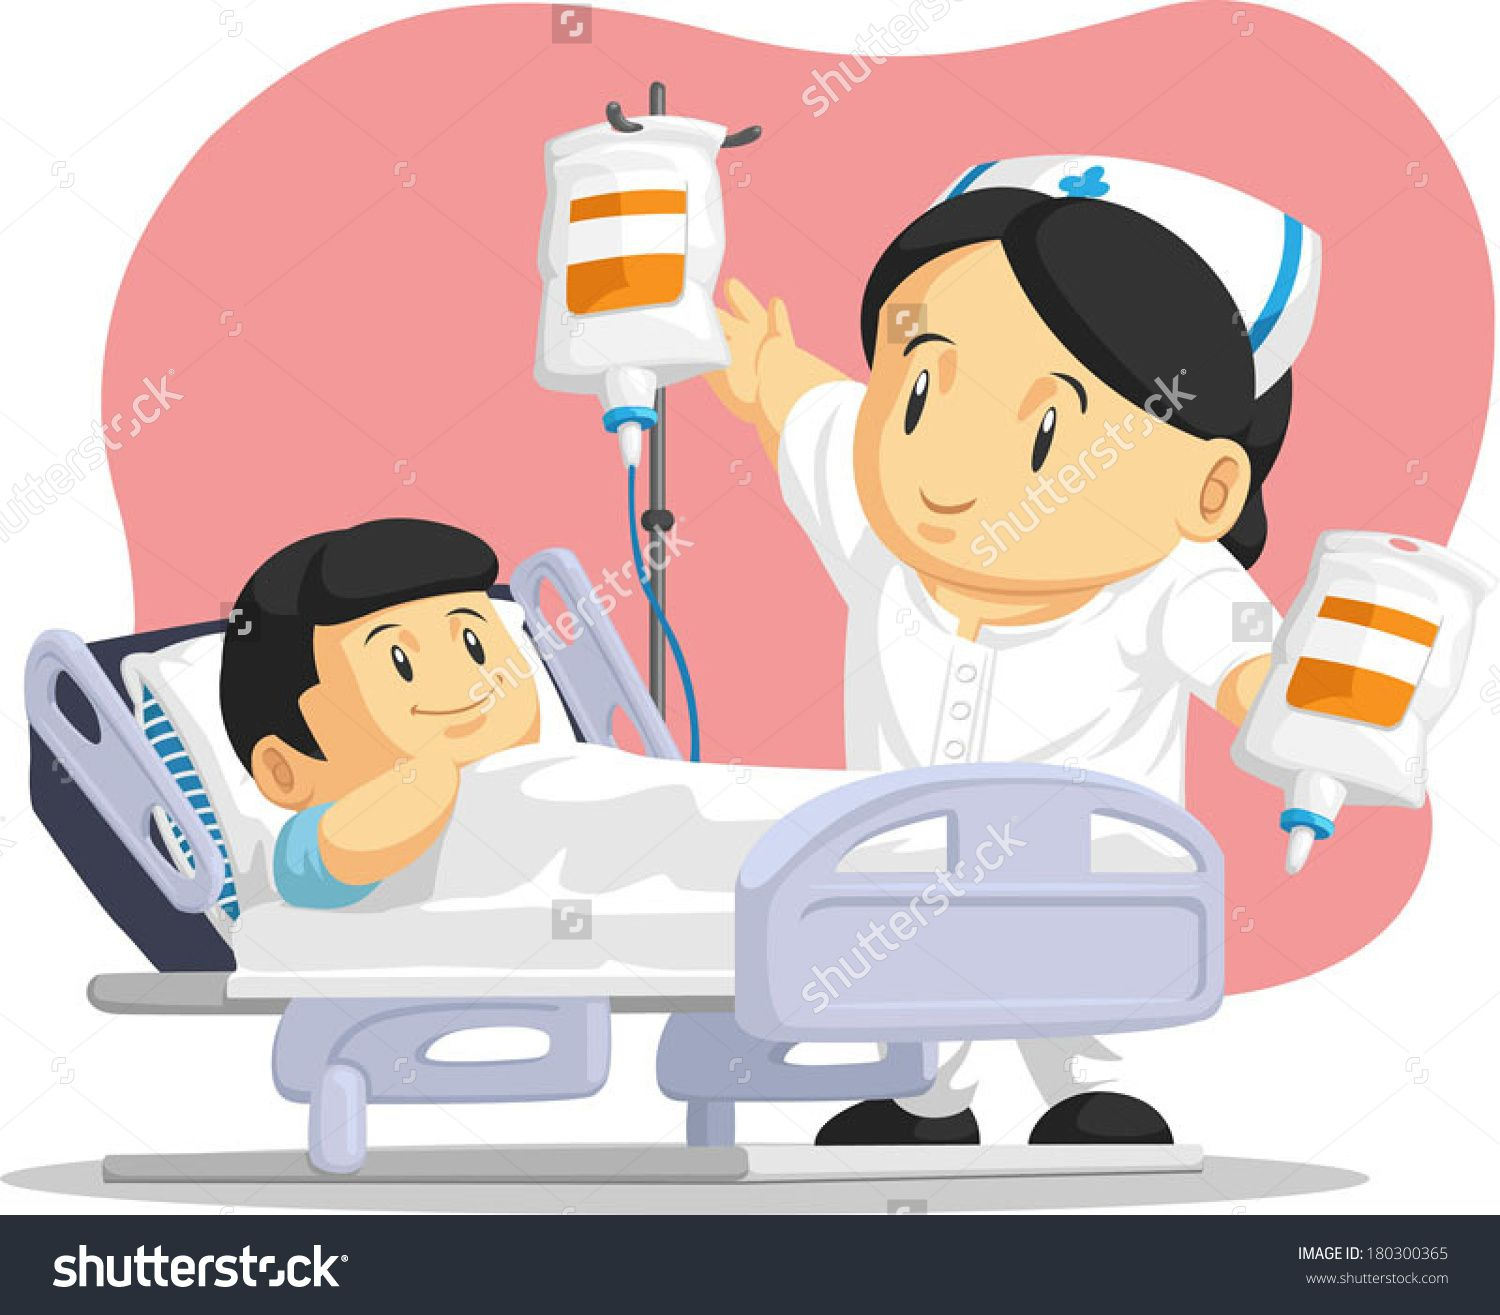 Hospital Cartoon Drawing At Getdrawings Com Free For Personal Use